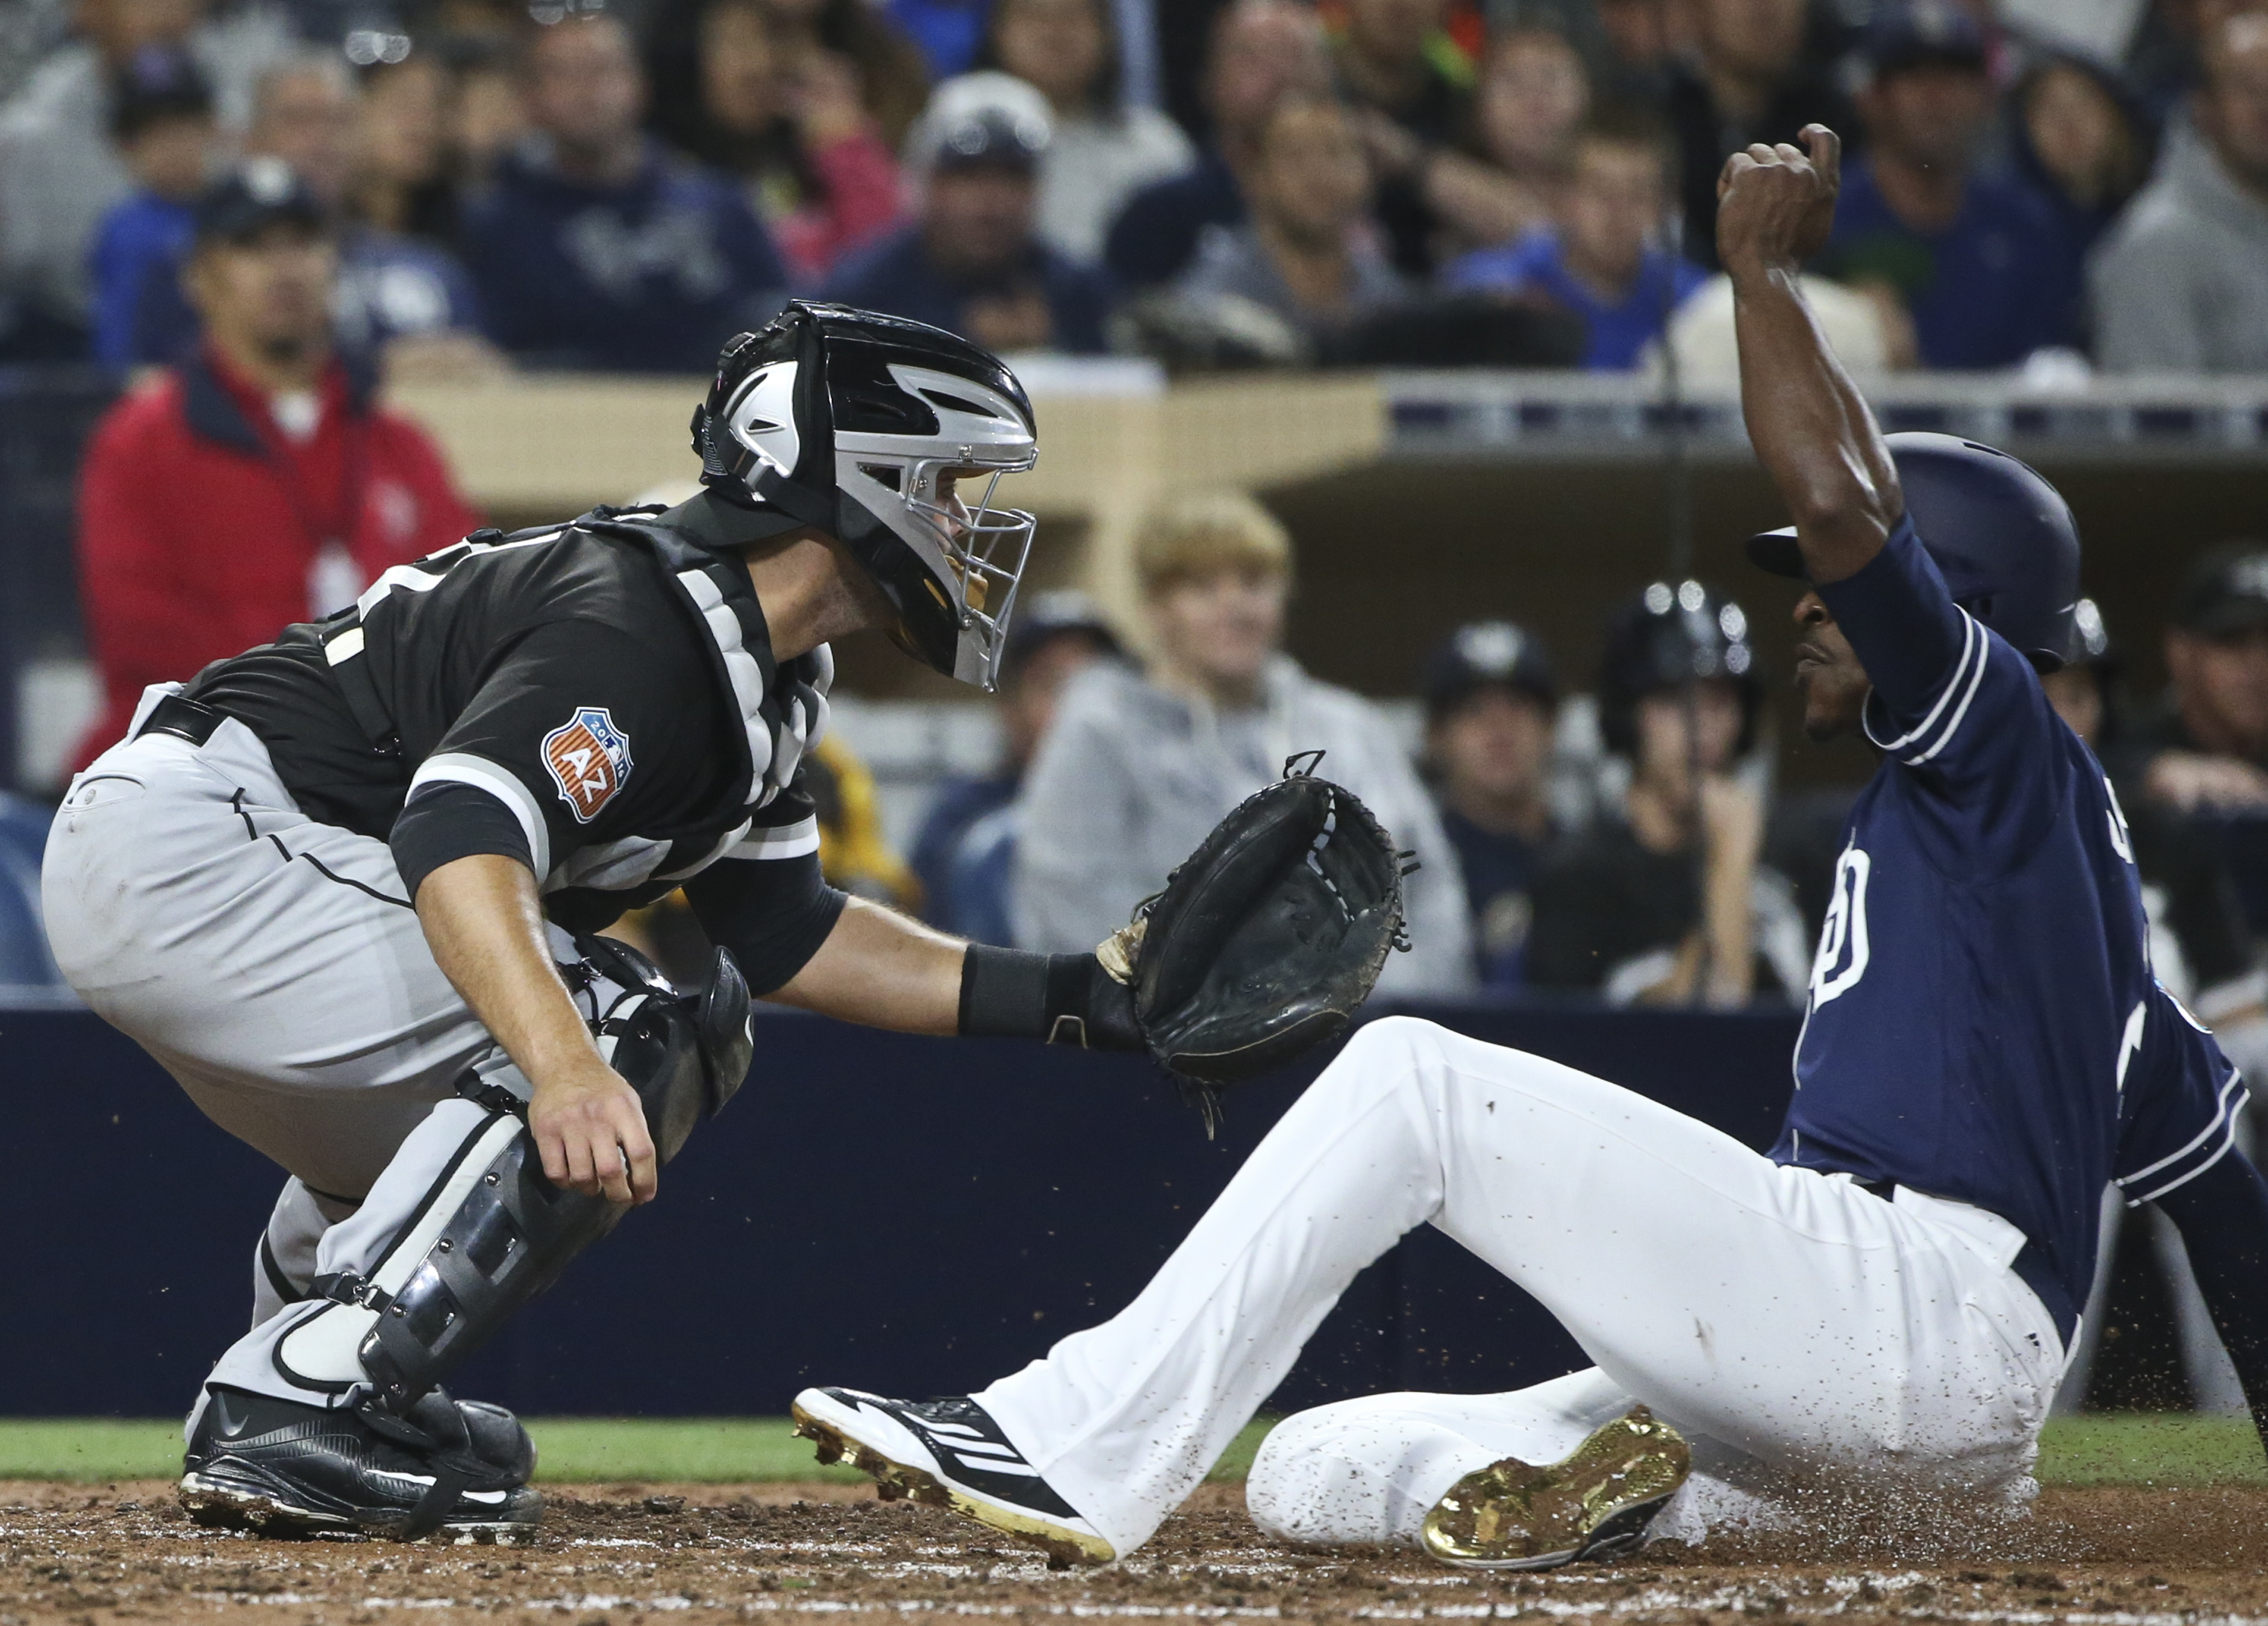 San Diego Padres' Mevin Upton Jr. beats the throw to Chicago White Sox catcher Alex Avila while scoring from third on a sacrifice fly during the sixth inning of an exhibition baseball game Friday, April 1, 2016, in San Diego. (AP Photo/Lenny Ignelzi)